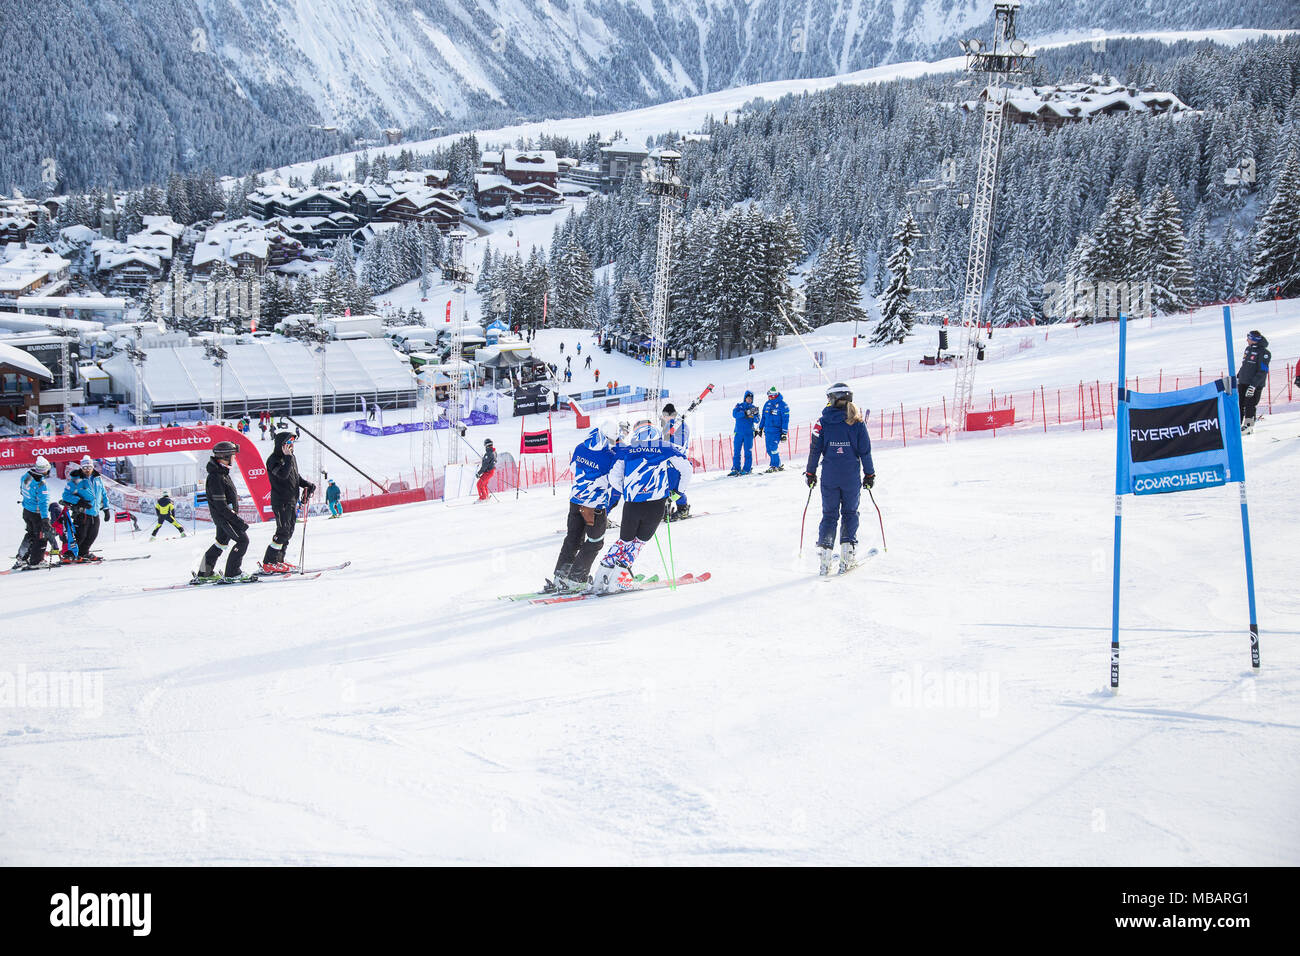 A view over Courchevel 1850 during the course inspection of the Audi Fis Alpine Ski World Cup Courchevel 2017 Ladies GS Women's Giant Slalom alpine sk - Stock Image